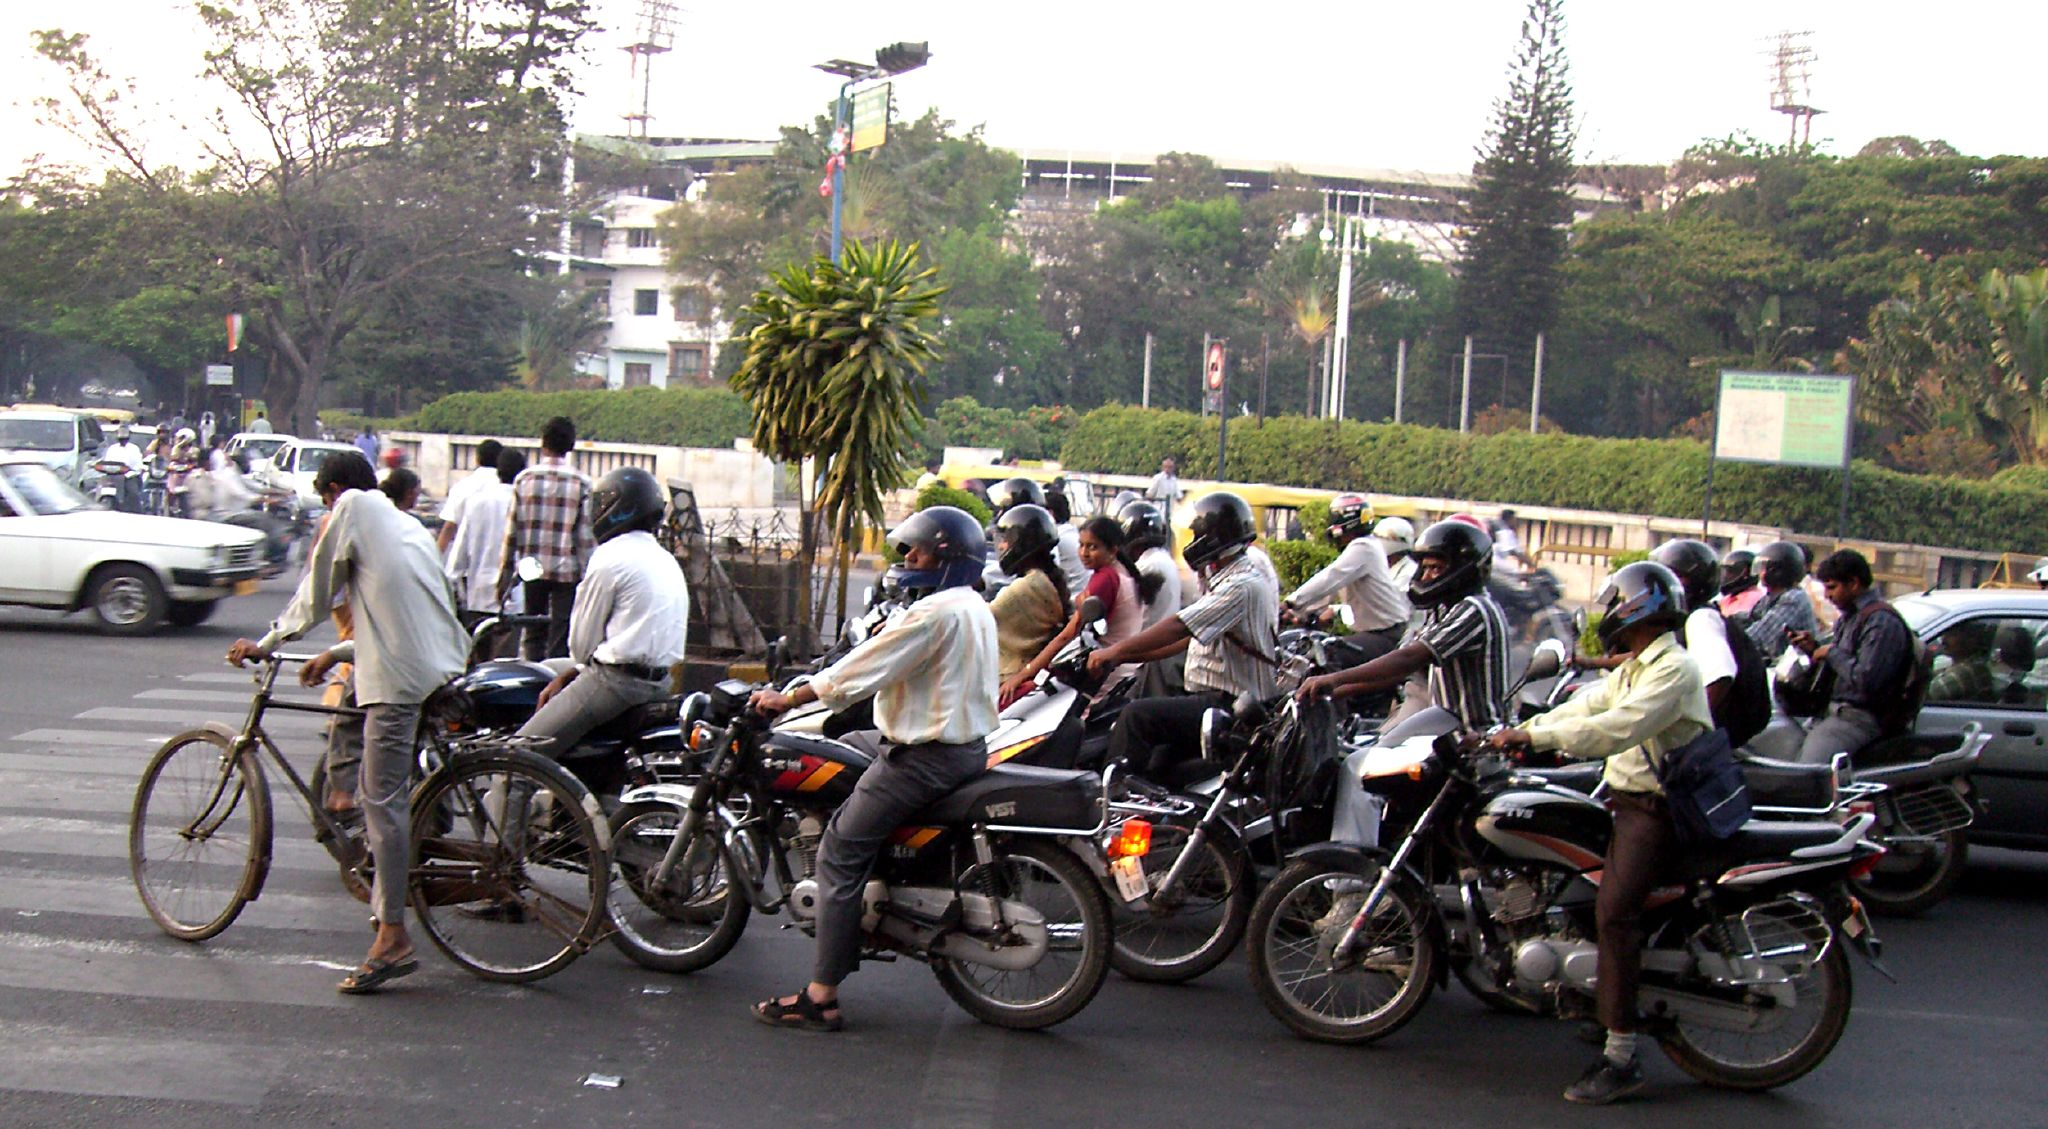 <p>A clutch of motorbikes wait for a traffic signal. Flickr/WRI Ross Center for Sustainable Cities</p>